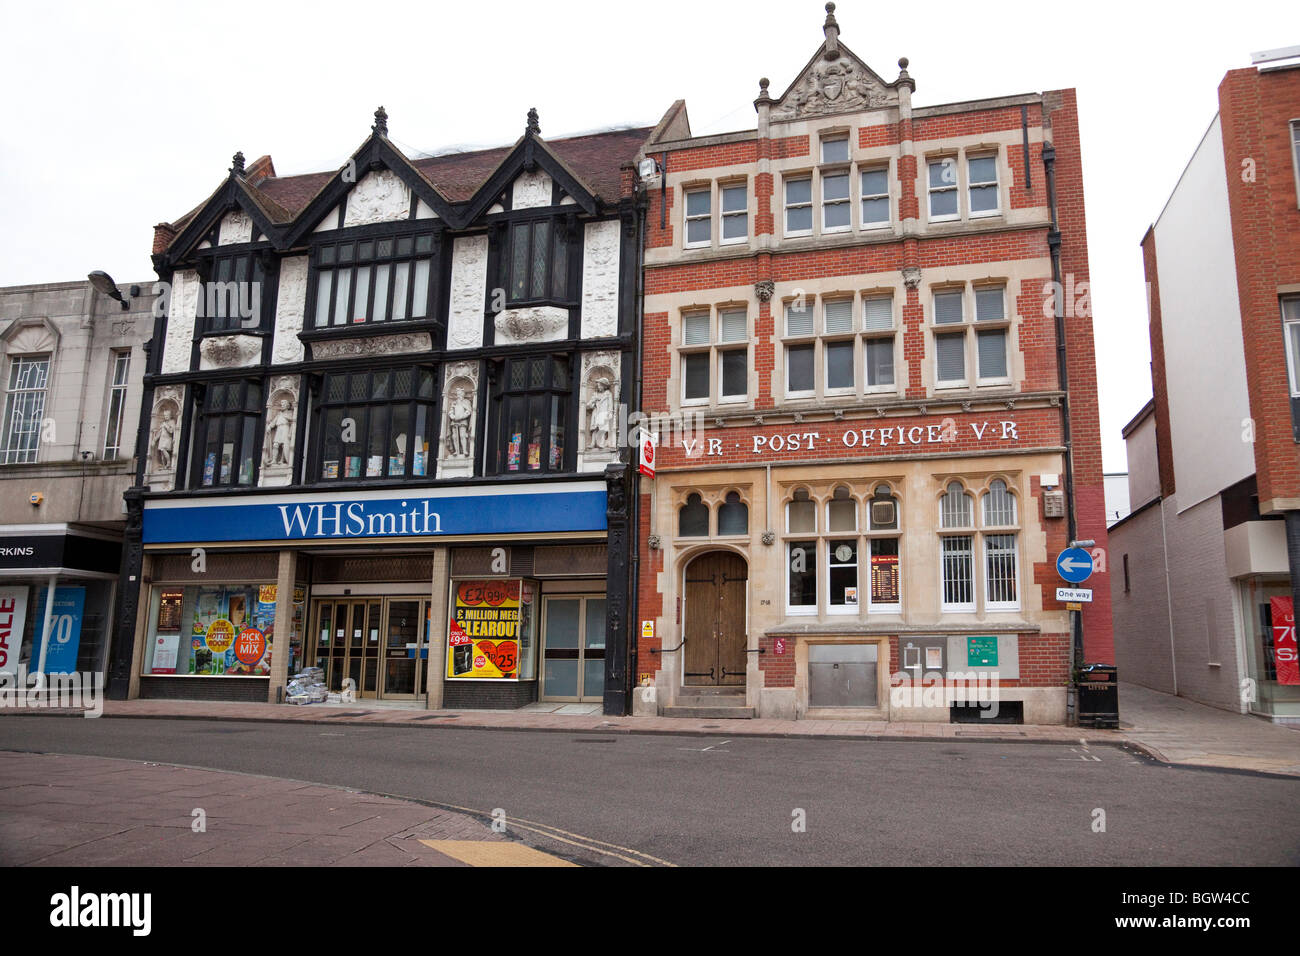 WH Smith and main Post Office in  town centre of Bury St Edmunds, UK - Stock Image